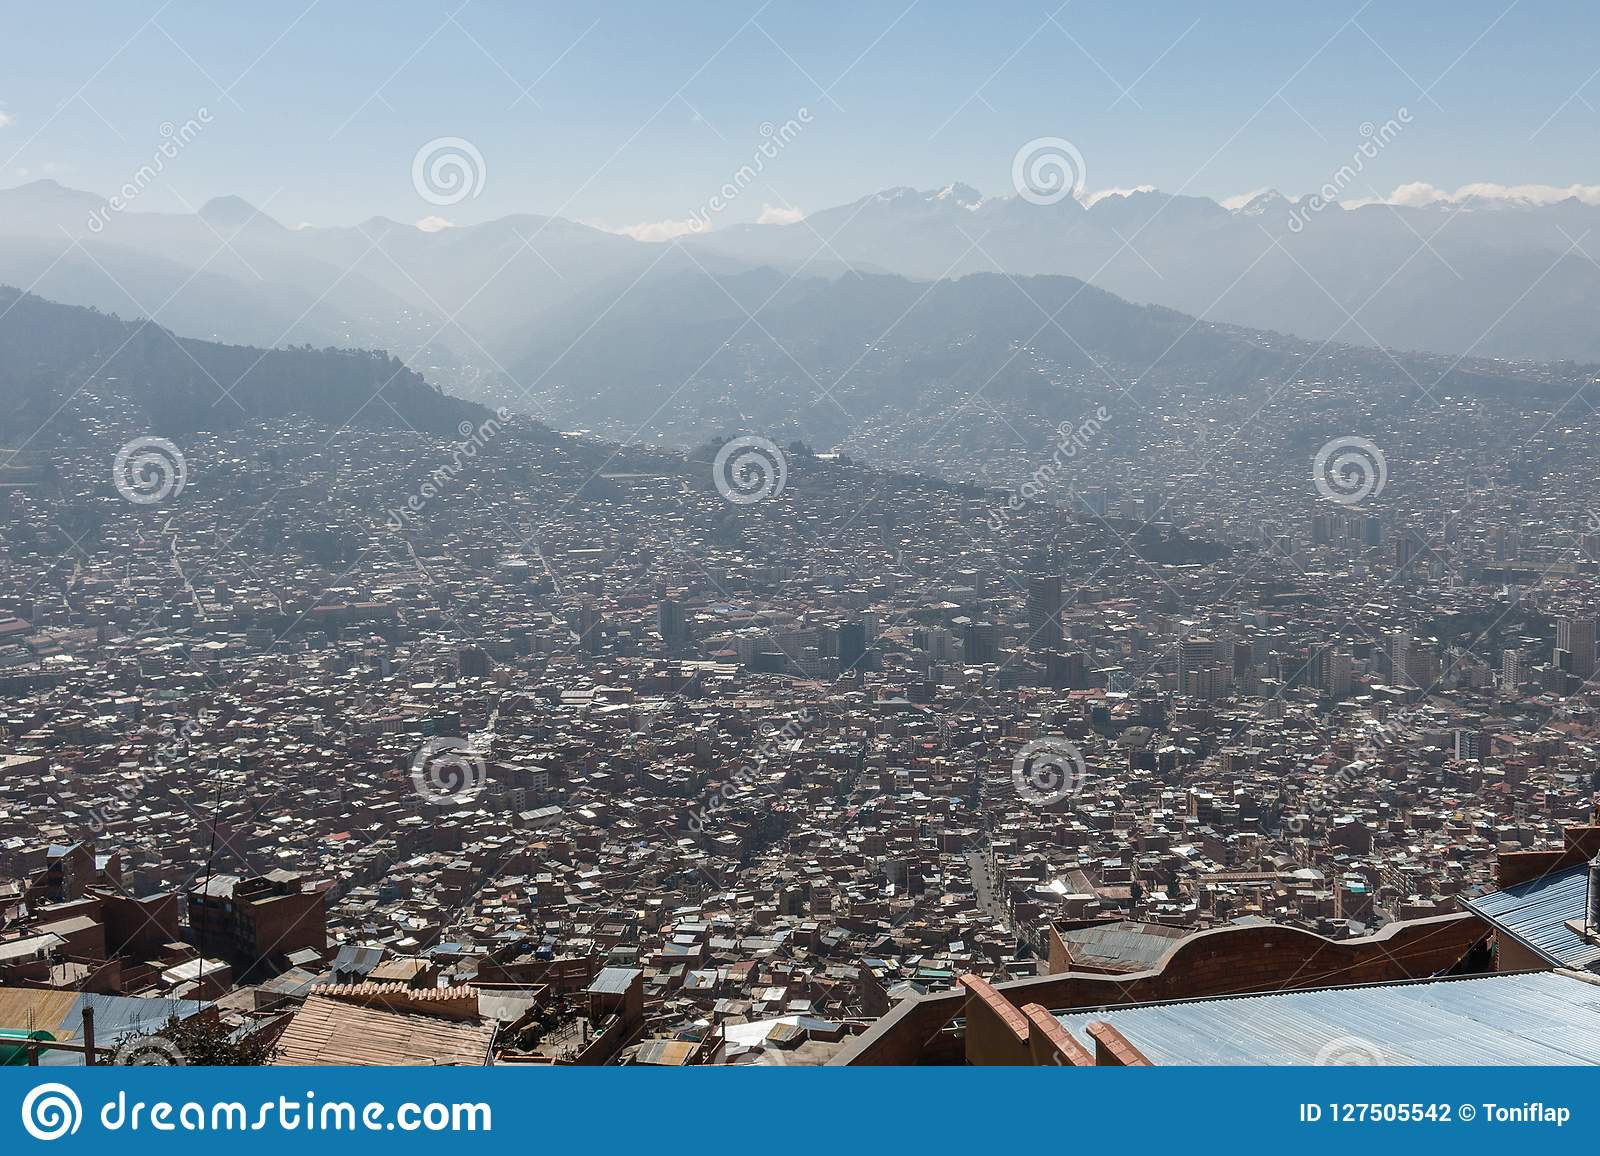 The City Of La Paz High In The Andes Mountains In Bolivia Stock Photo Image Of Bolivian Landscape 127505542